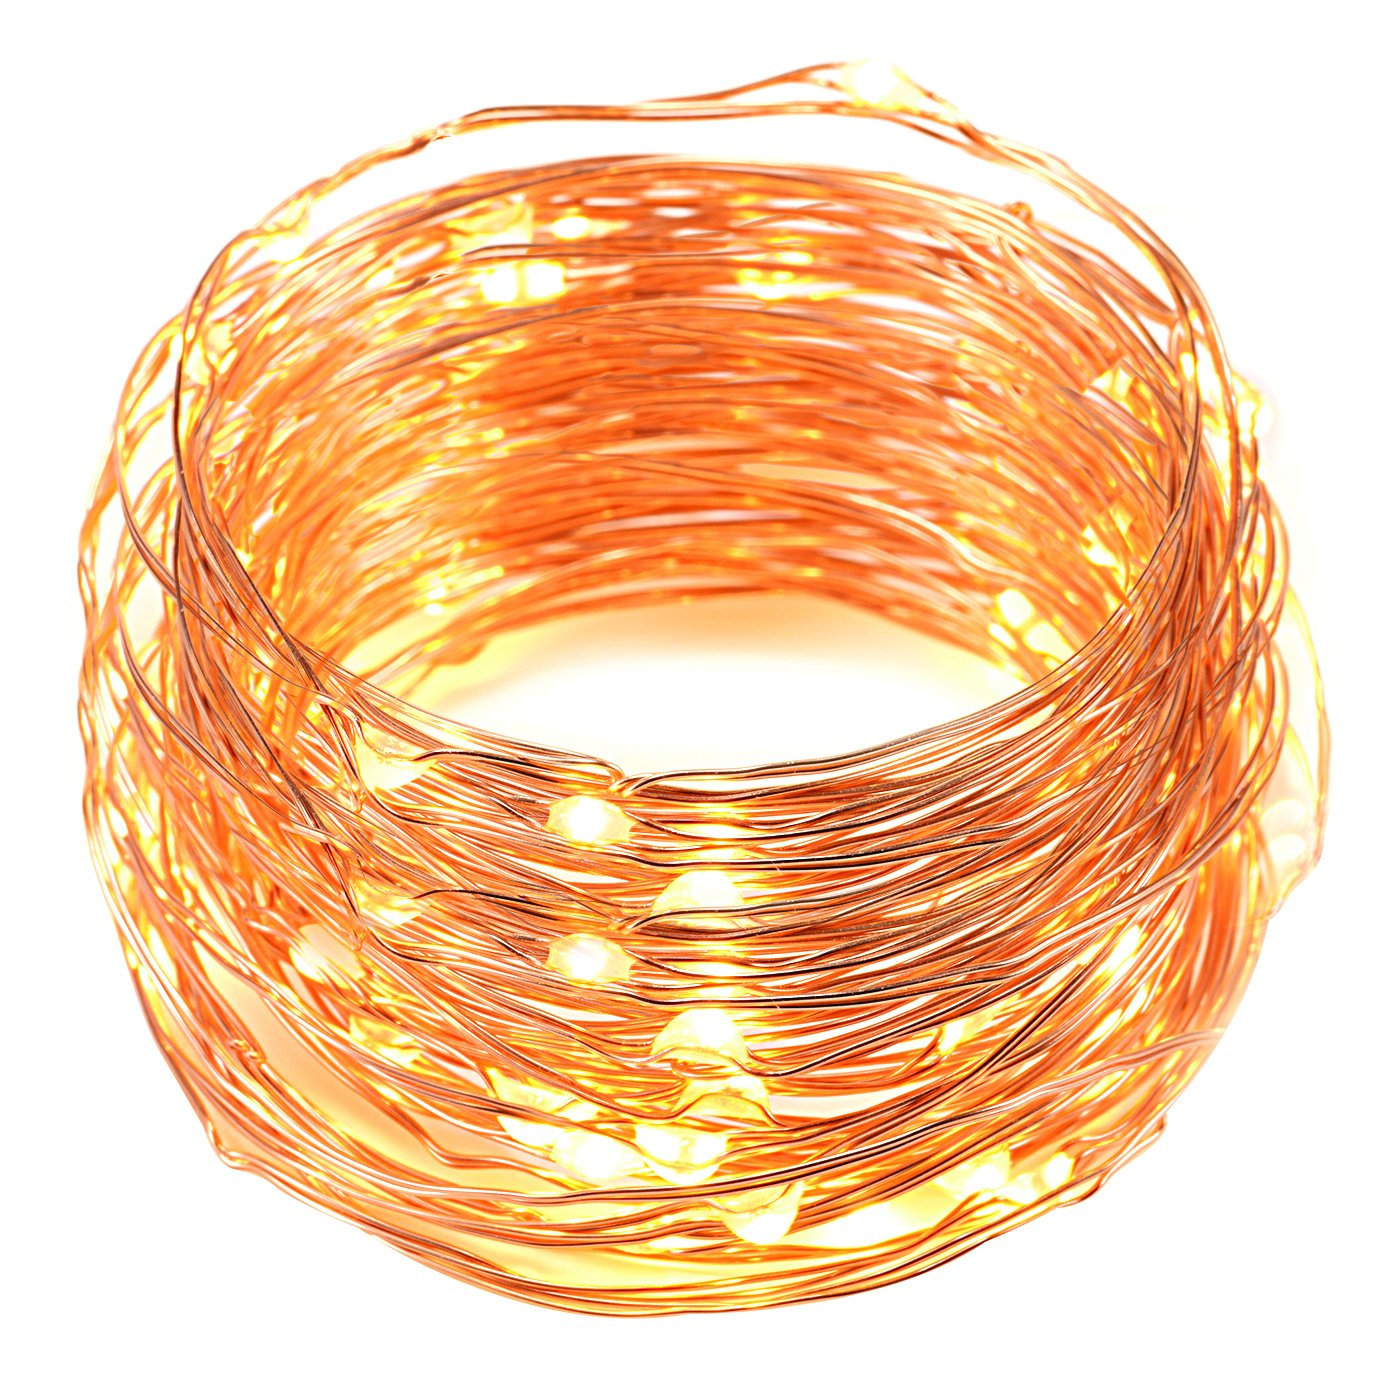 Led Fairy Lights Oak Leaf 2 Set Of Usb 60 Starry String House Wiring In Series Copper Wire For Home Bedroom Christmas Party Wedding Decoration 197ft